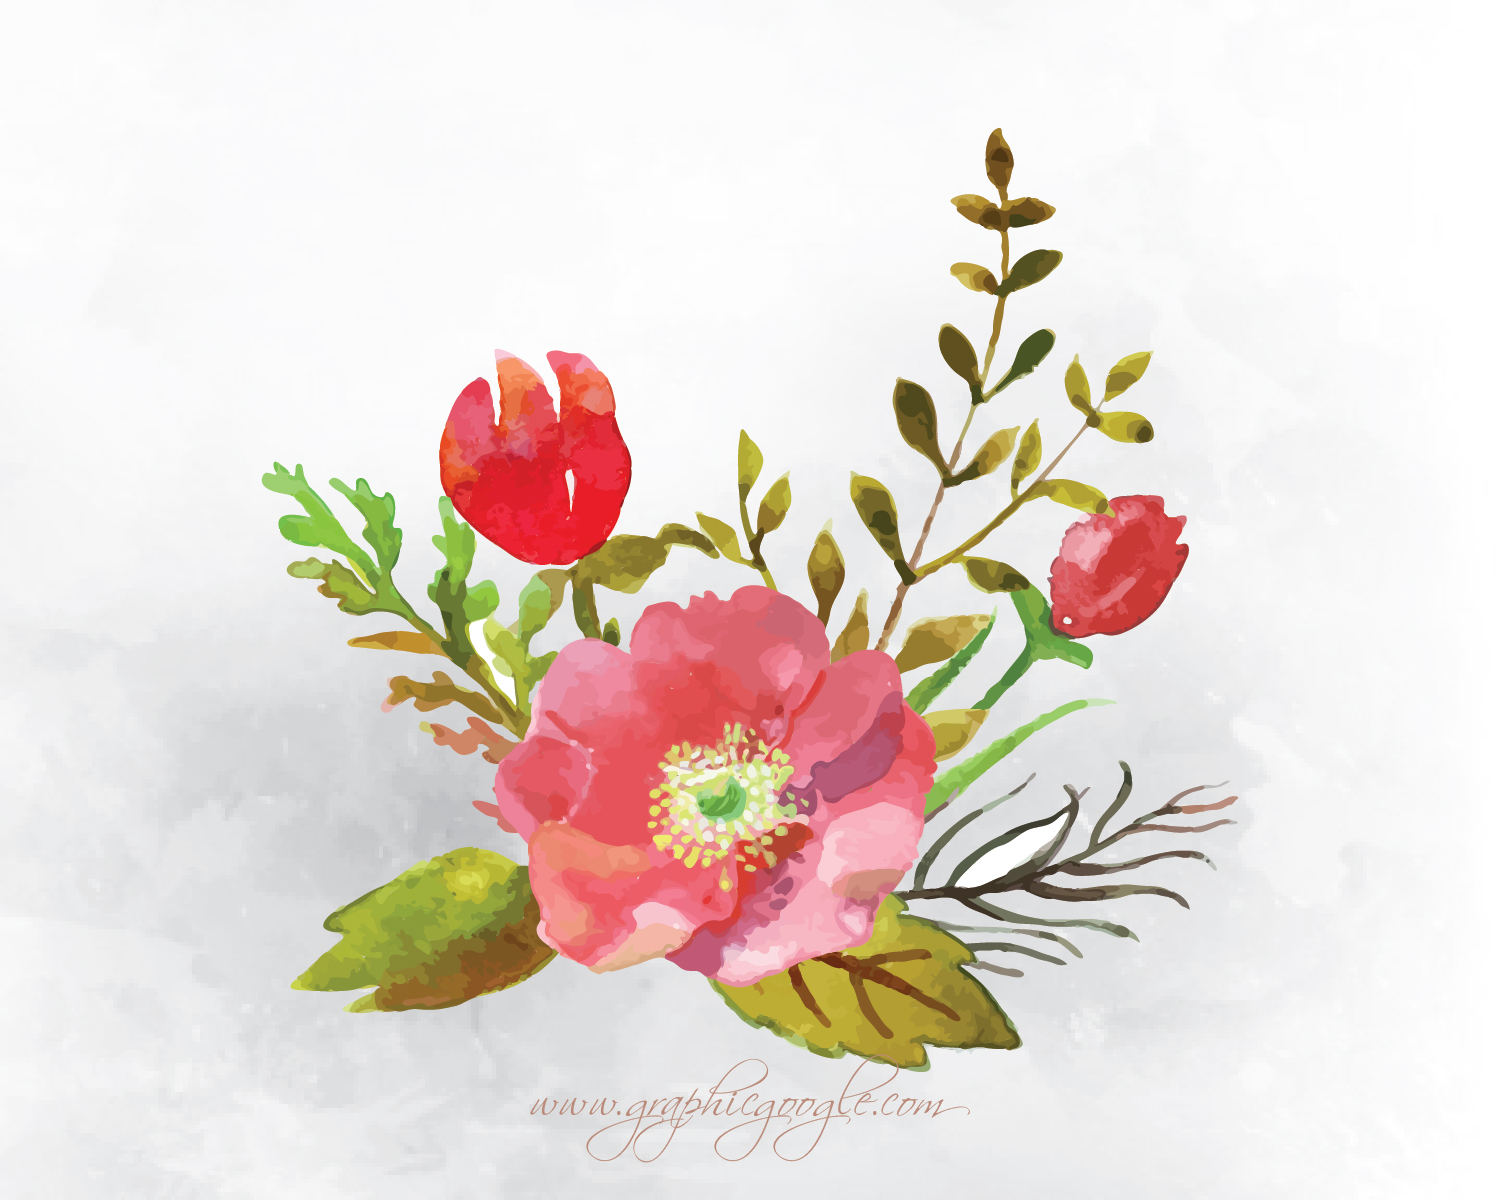 9 free watercolor flower vectors for designersgraphic google  u2013 tasty graphic designs collection